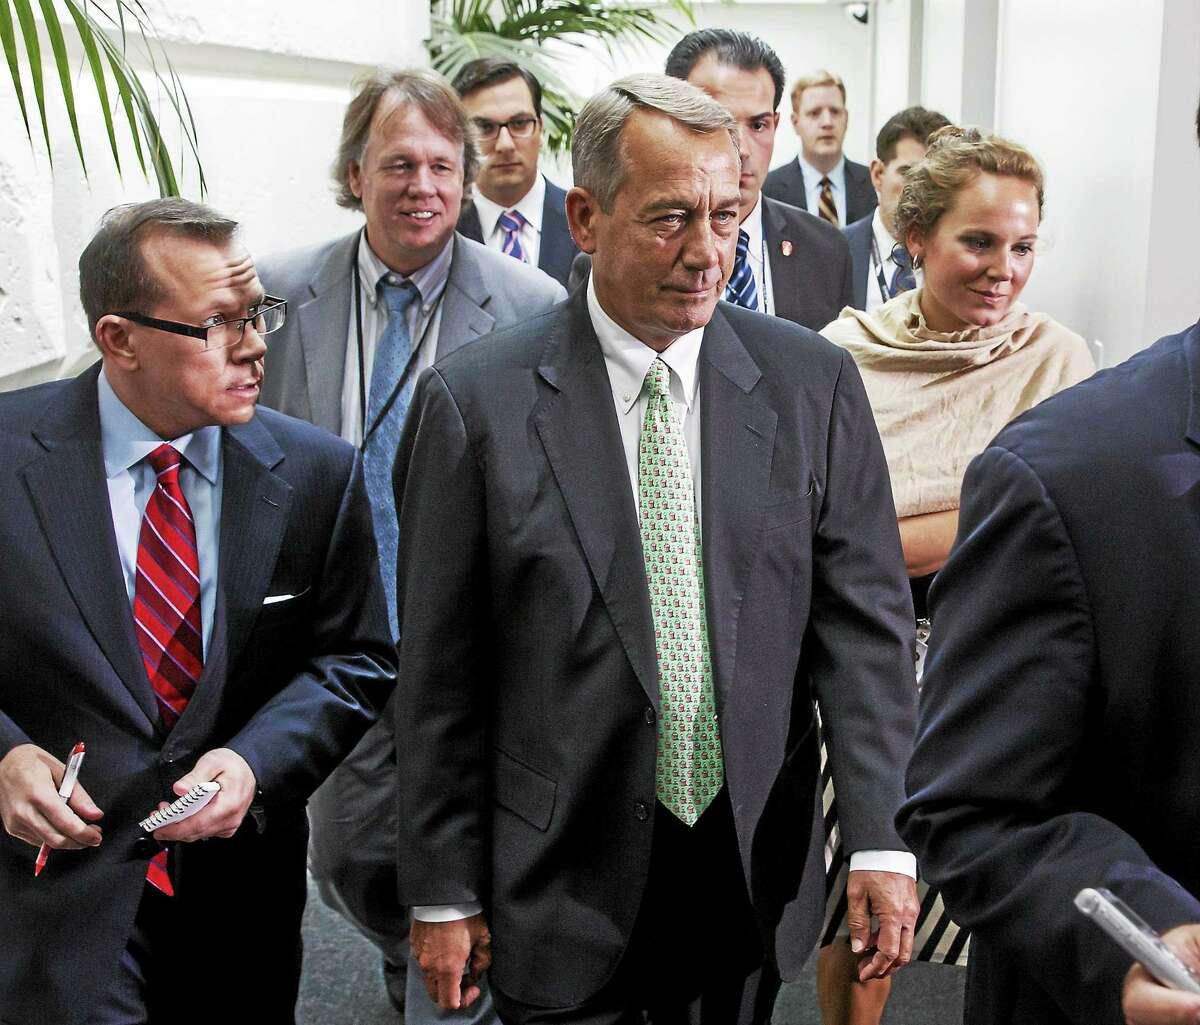 Speaker of the House John Boehner of Ohio, walks past reporters following a closed-door meeting of House Republicans on Capitol Hill in Washington, Friday, Aug. 1, 2014, to discuss the border crisis. Immigration is just one of several issues pending before Congress as it returns from its August recess.